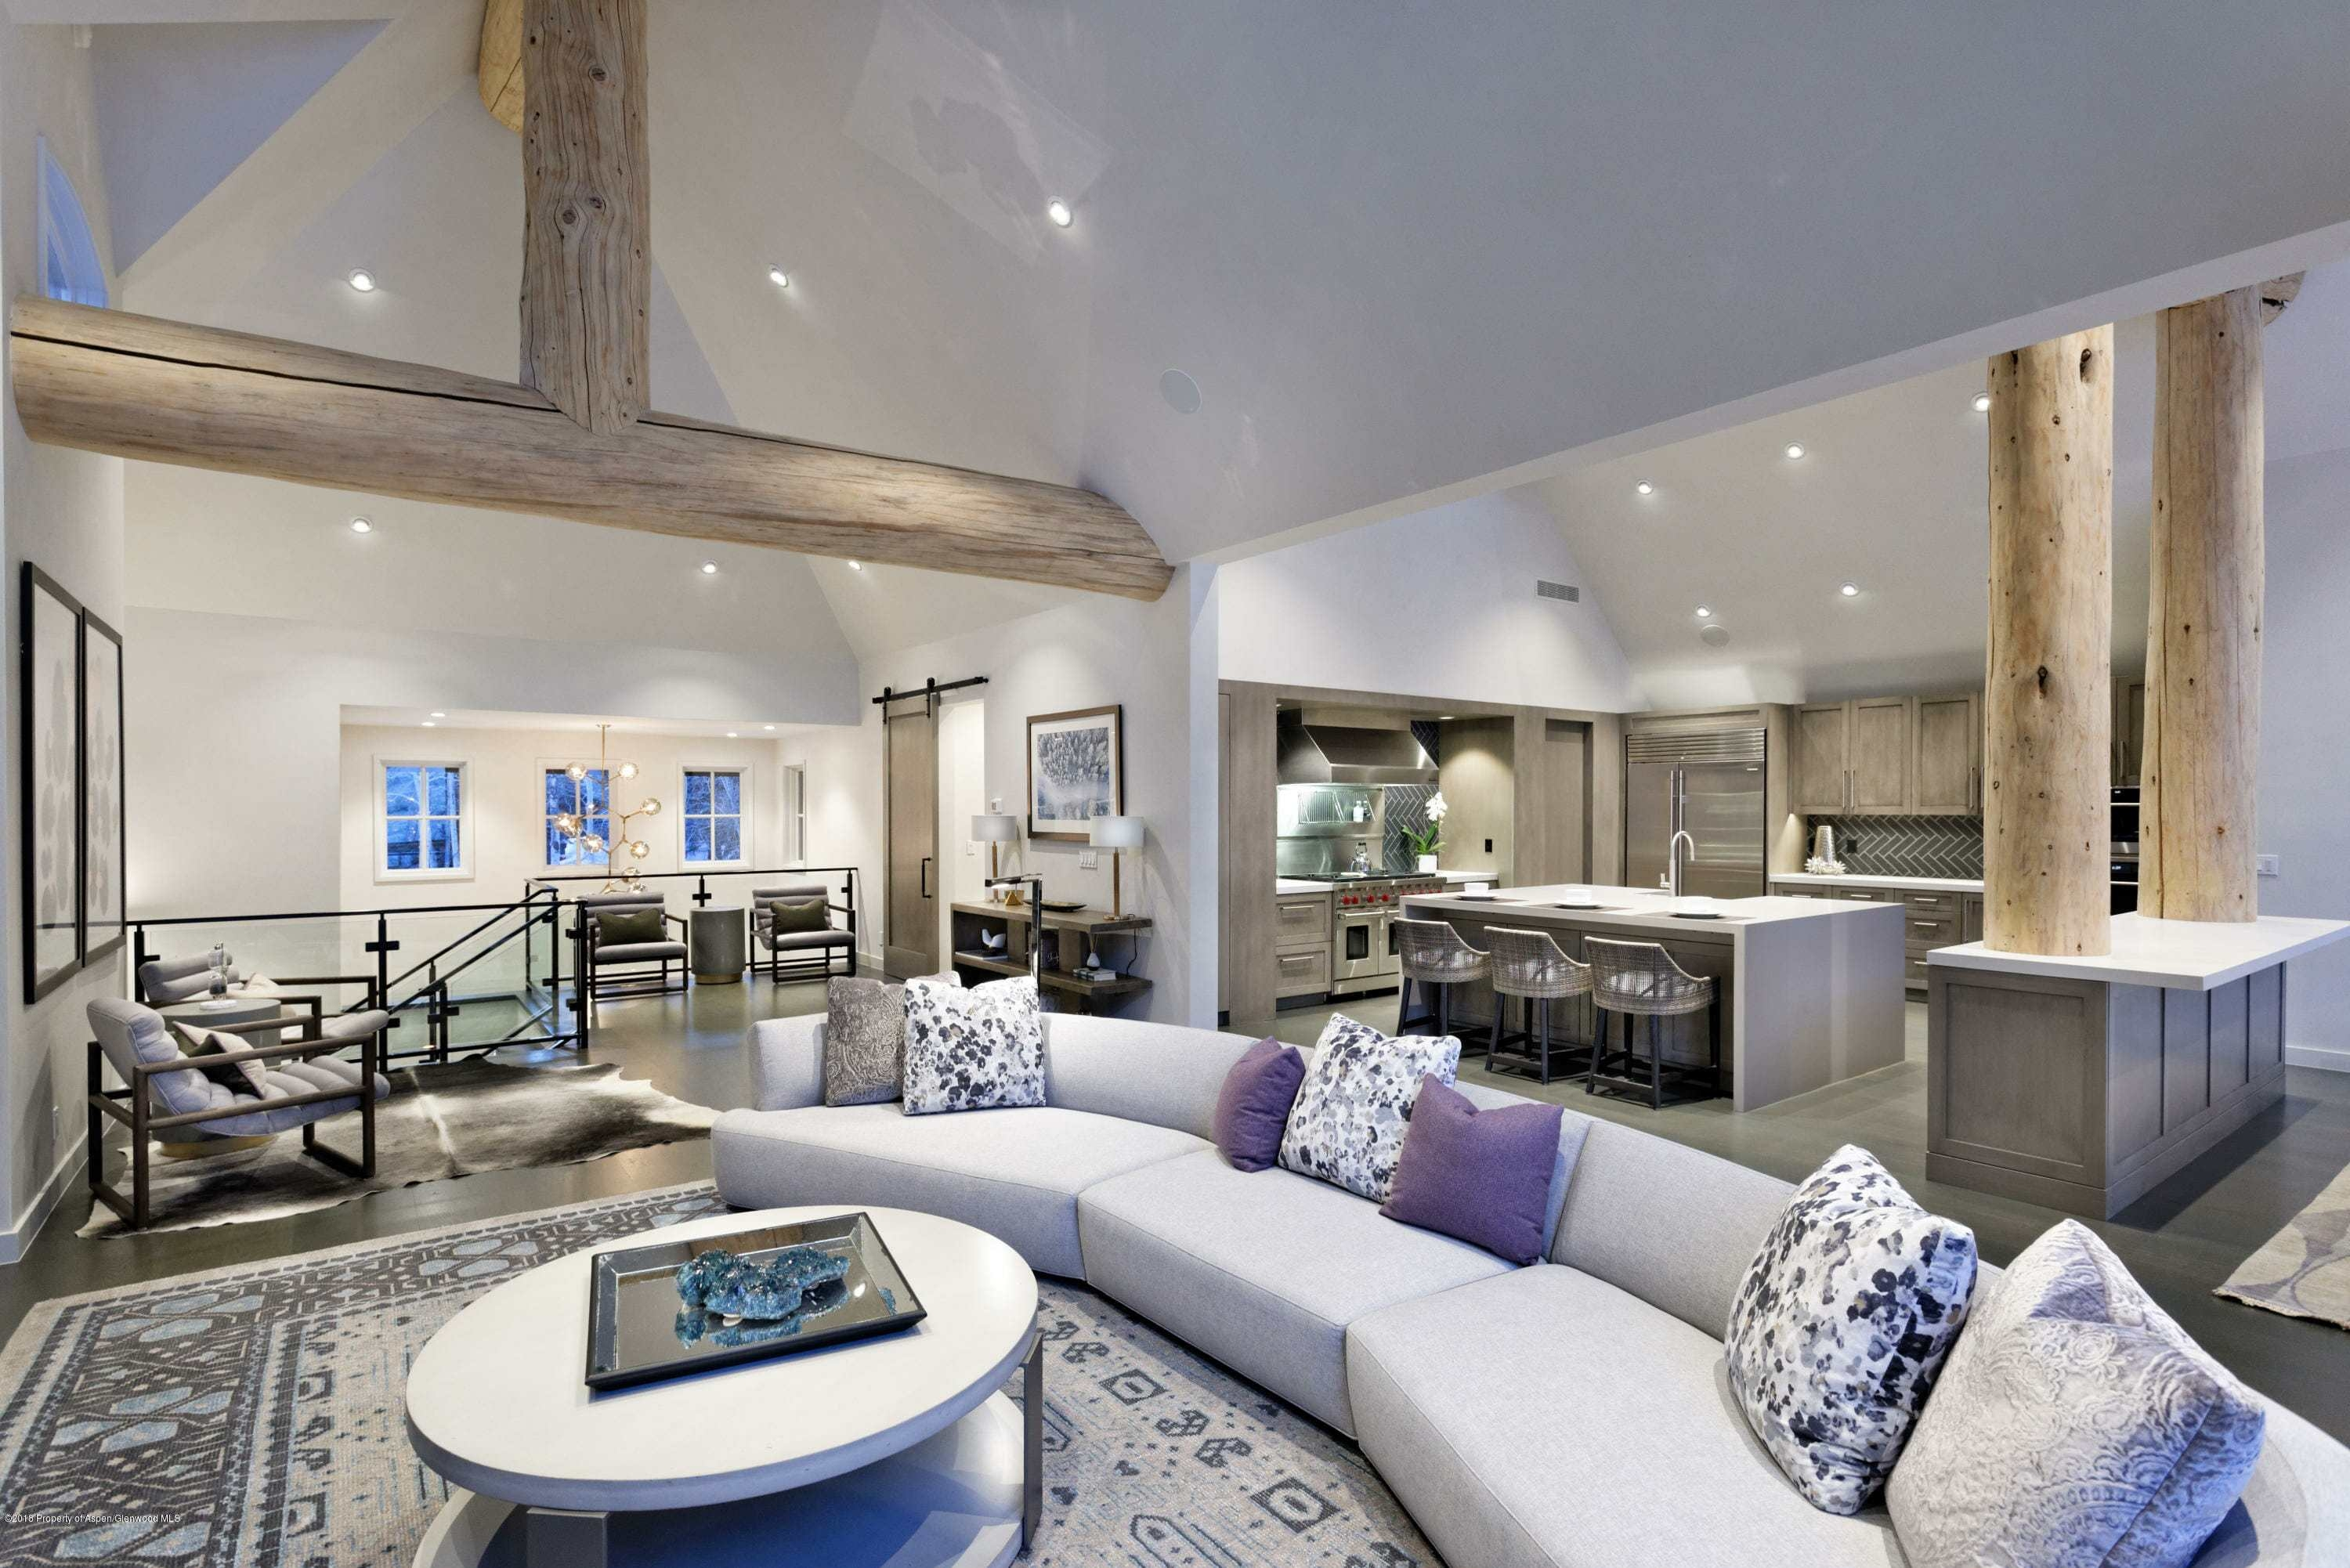 2018 Remodeled Ute Ave Home Closes at $13.3M/$2,785 Sq Ft Furnished Grosses 37% Return Image